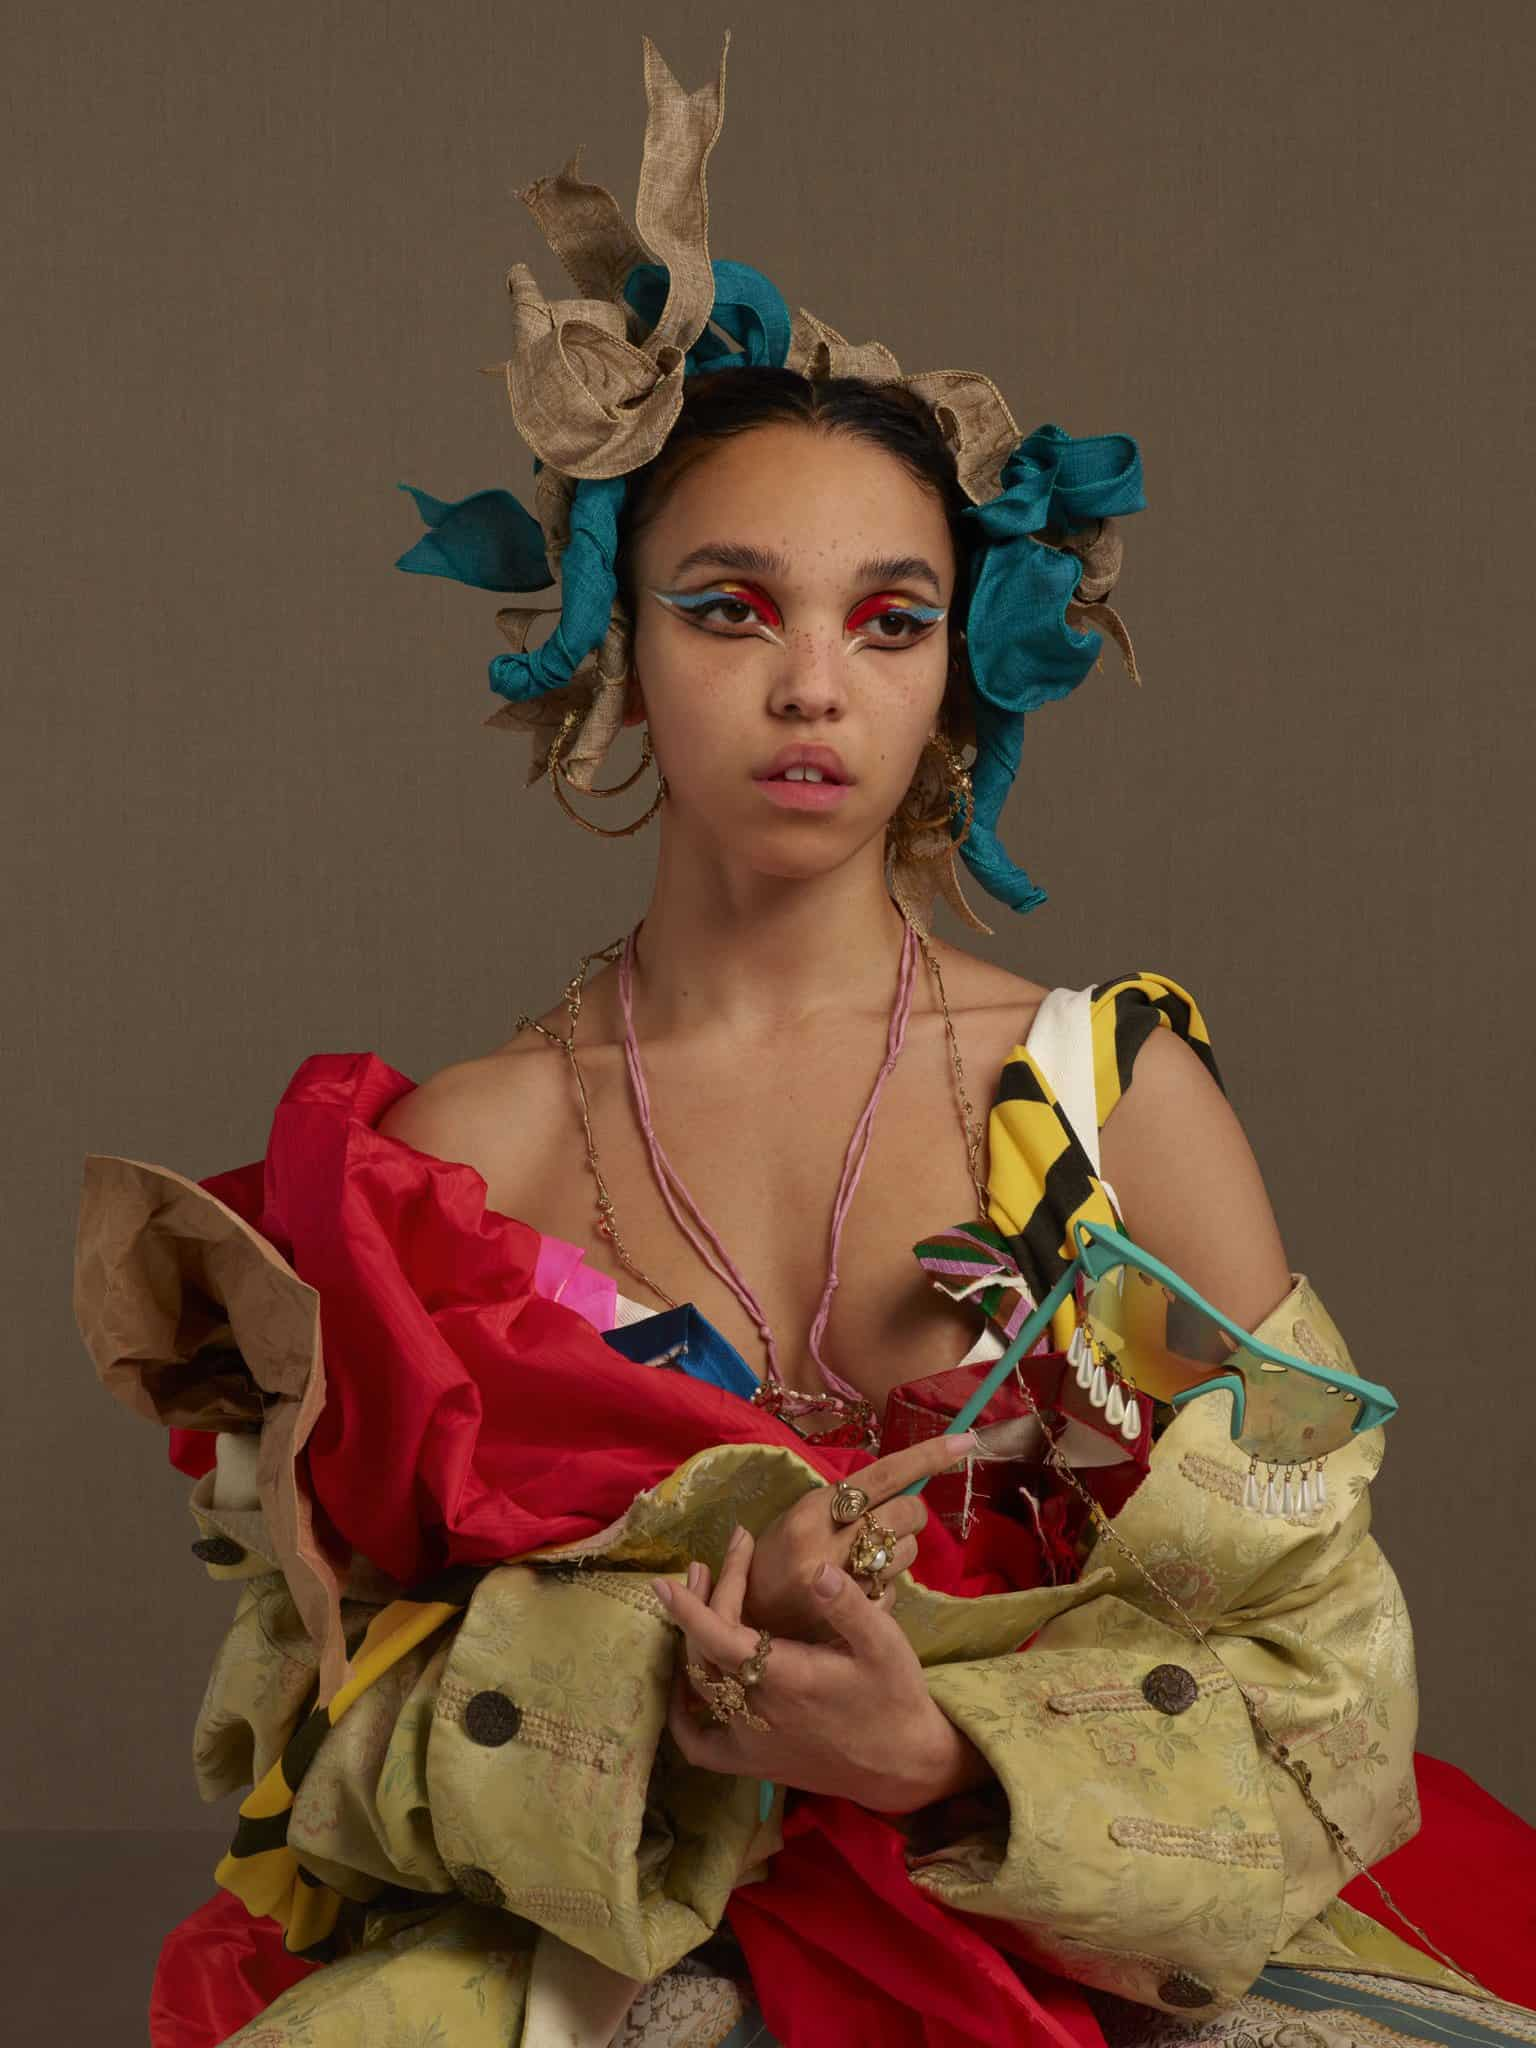 Today S Song Fka Twigs Preaches A Self Love Saturated